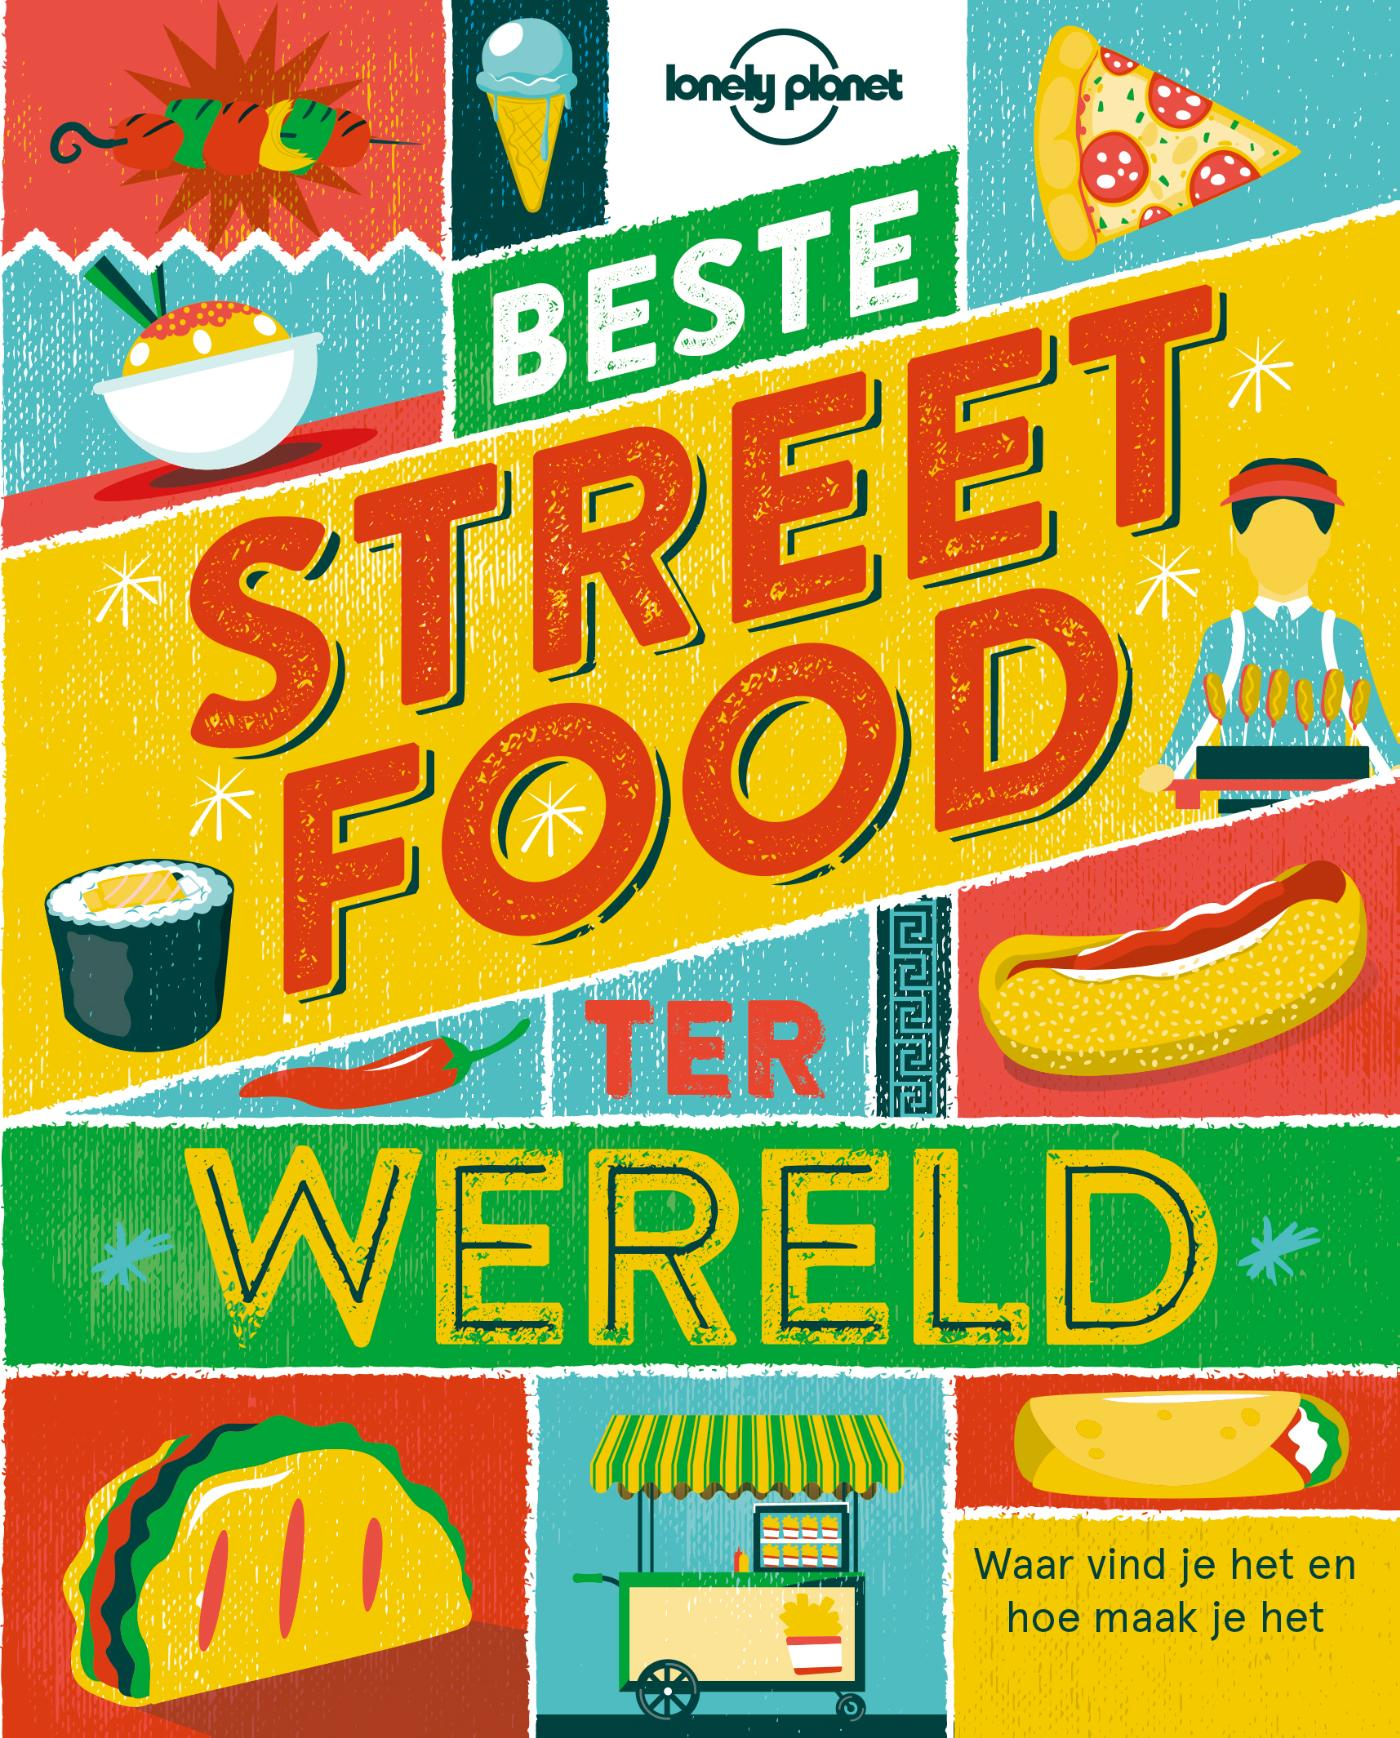 Lonely planet: Beste streetfood ter wereld